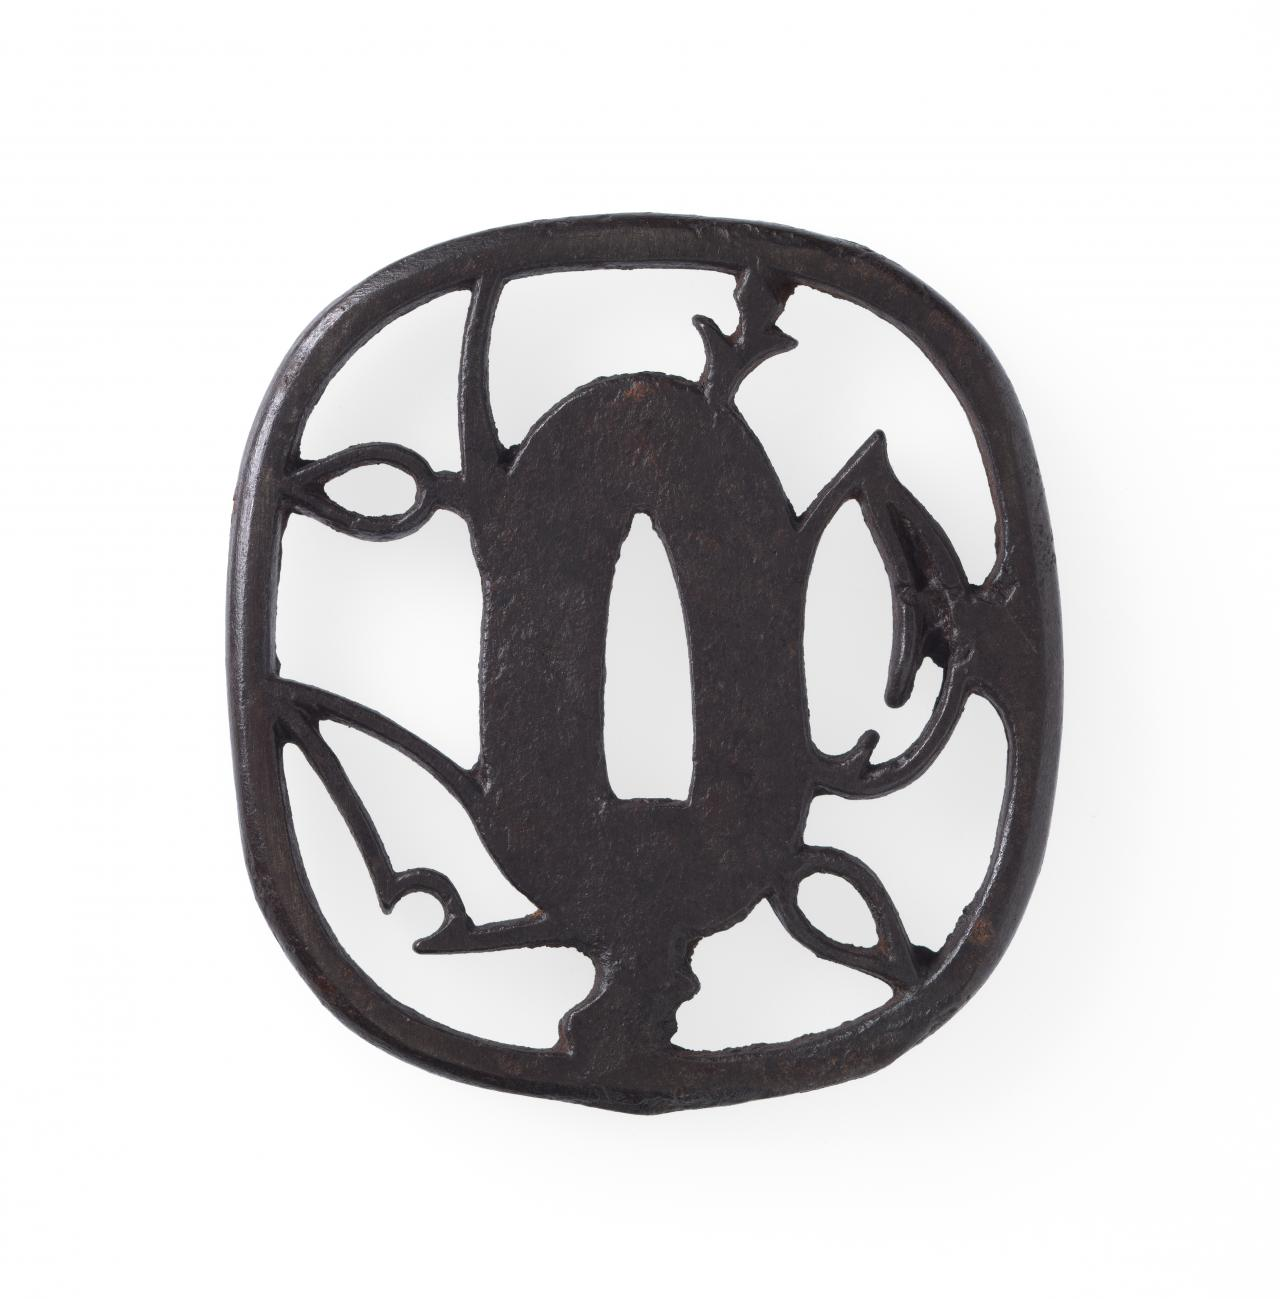 Sword guard with stylised peach tree design